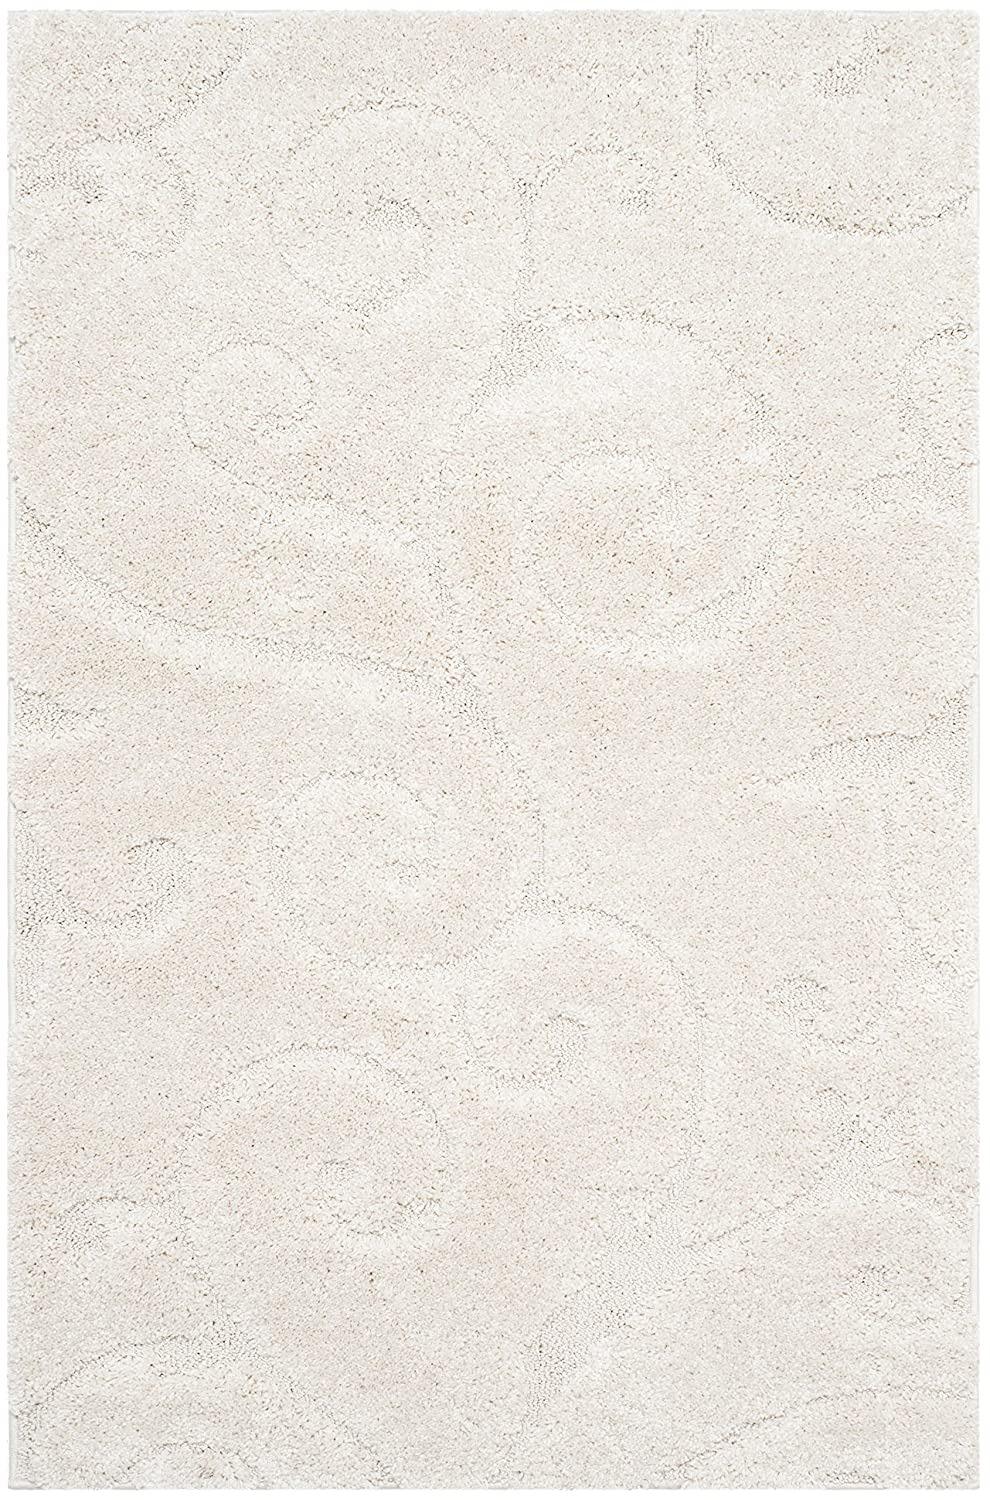 Creme Creme 2'3  x 4' Safavieh Florida Shag Collection SG455-1290 Scrolling Vine Ivory and Black Graceful Swirl Area Rug (6' x 9')